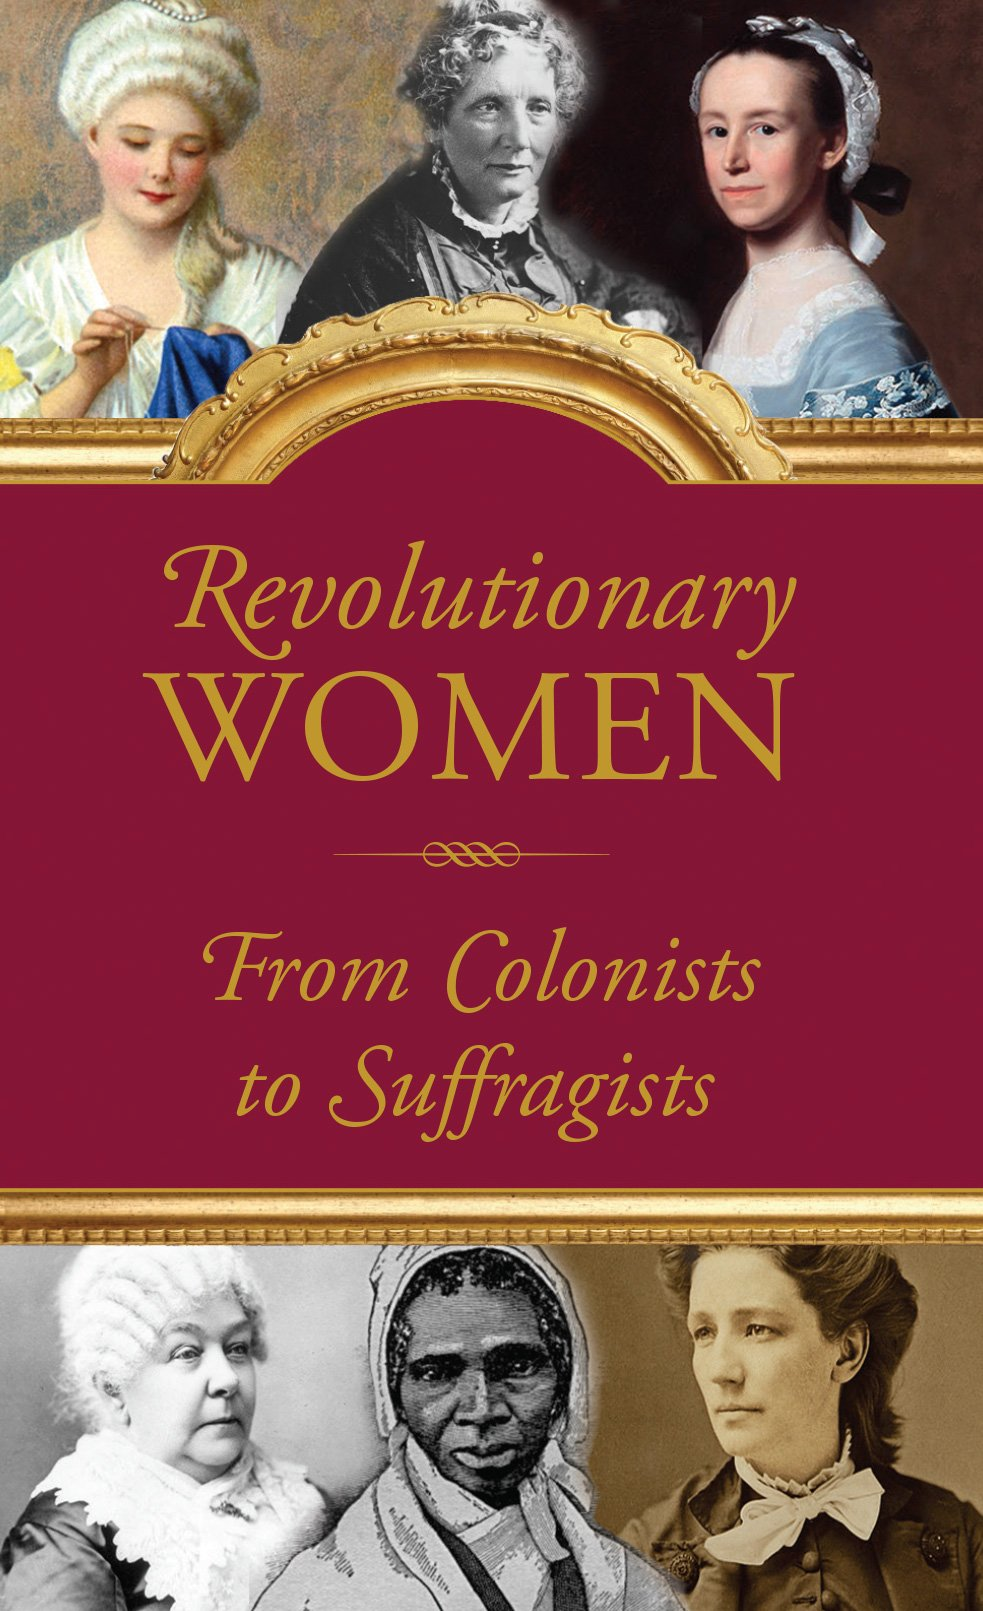 Revolutionary Women: Amazing Women of the United States, from the 1600s through 1900s